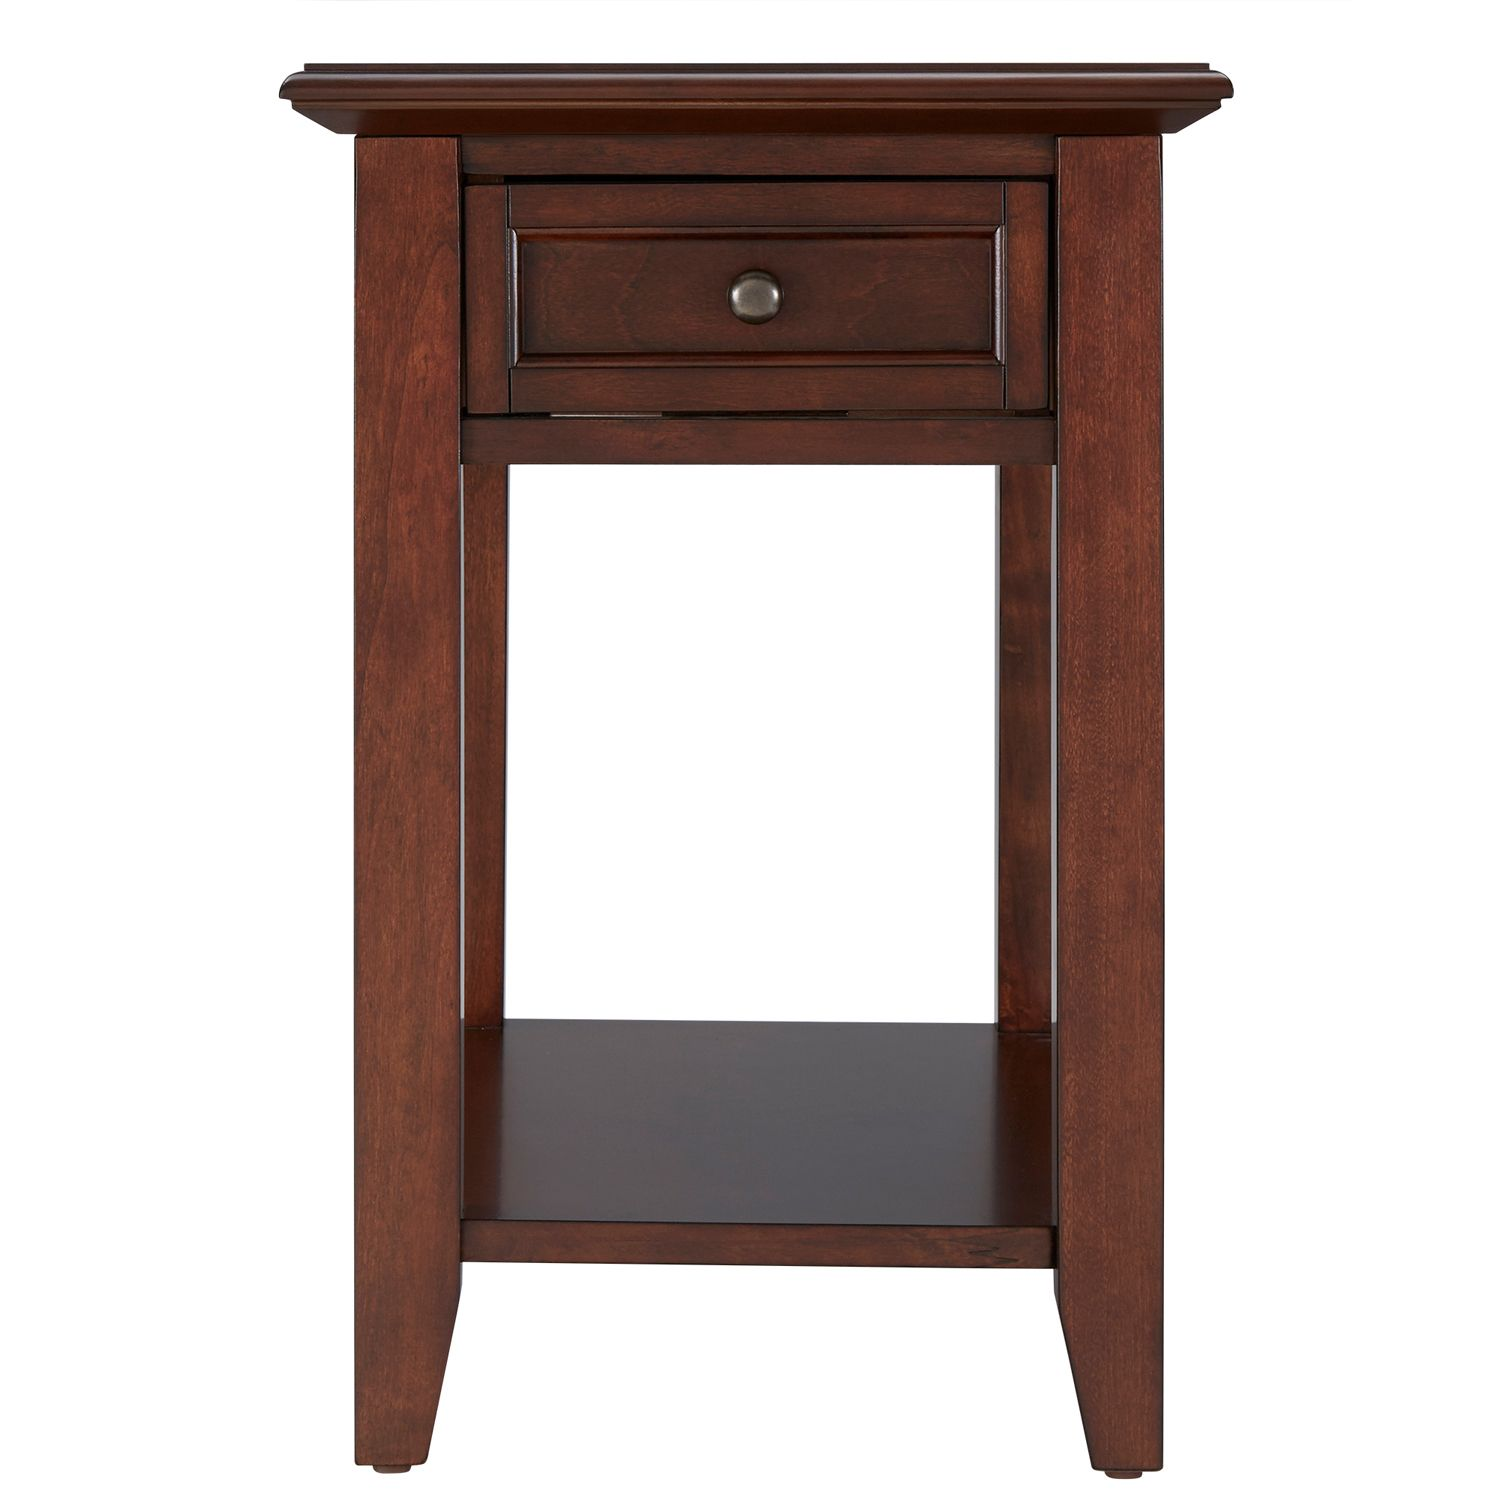 espresso single drawer end table with power strip living room accent coffee cover ideas ikea kids storage boxes media console torch lamp ornate side silver mirrored nightstand